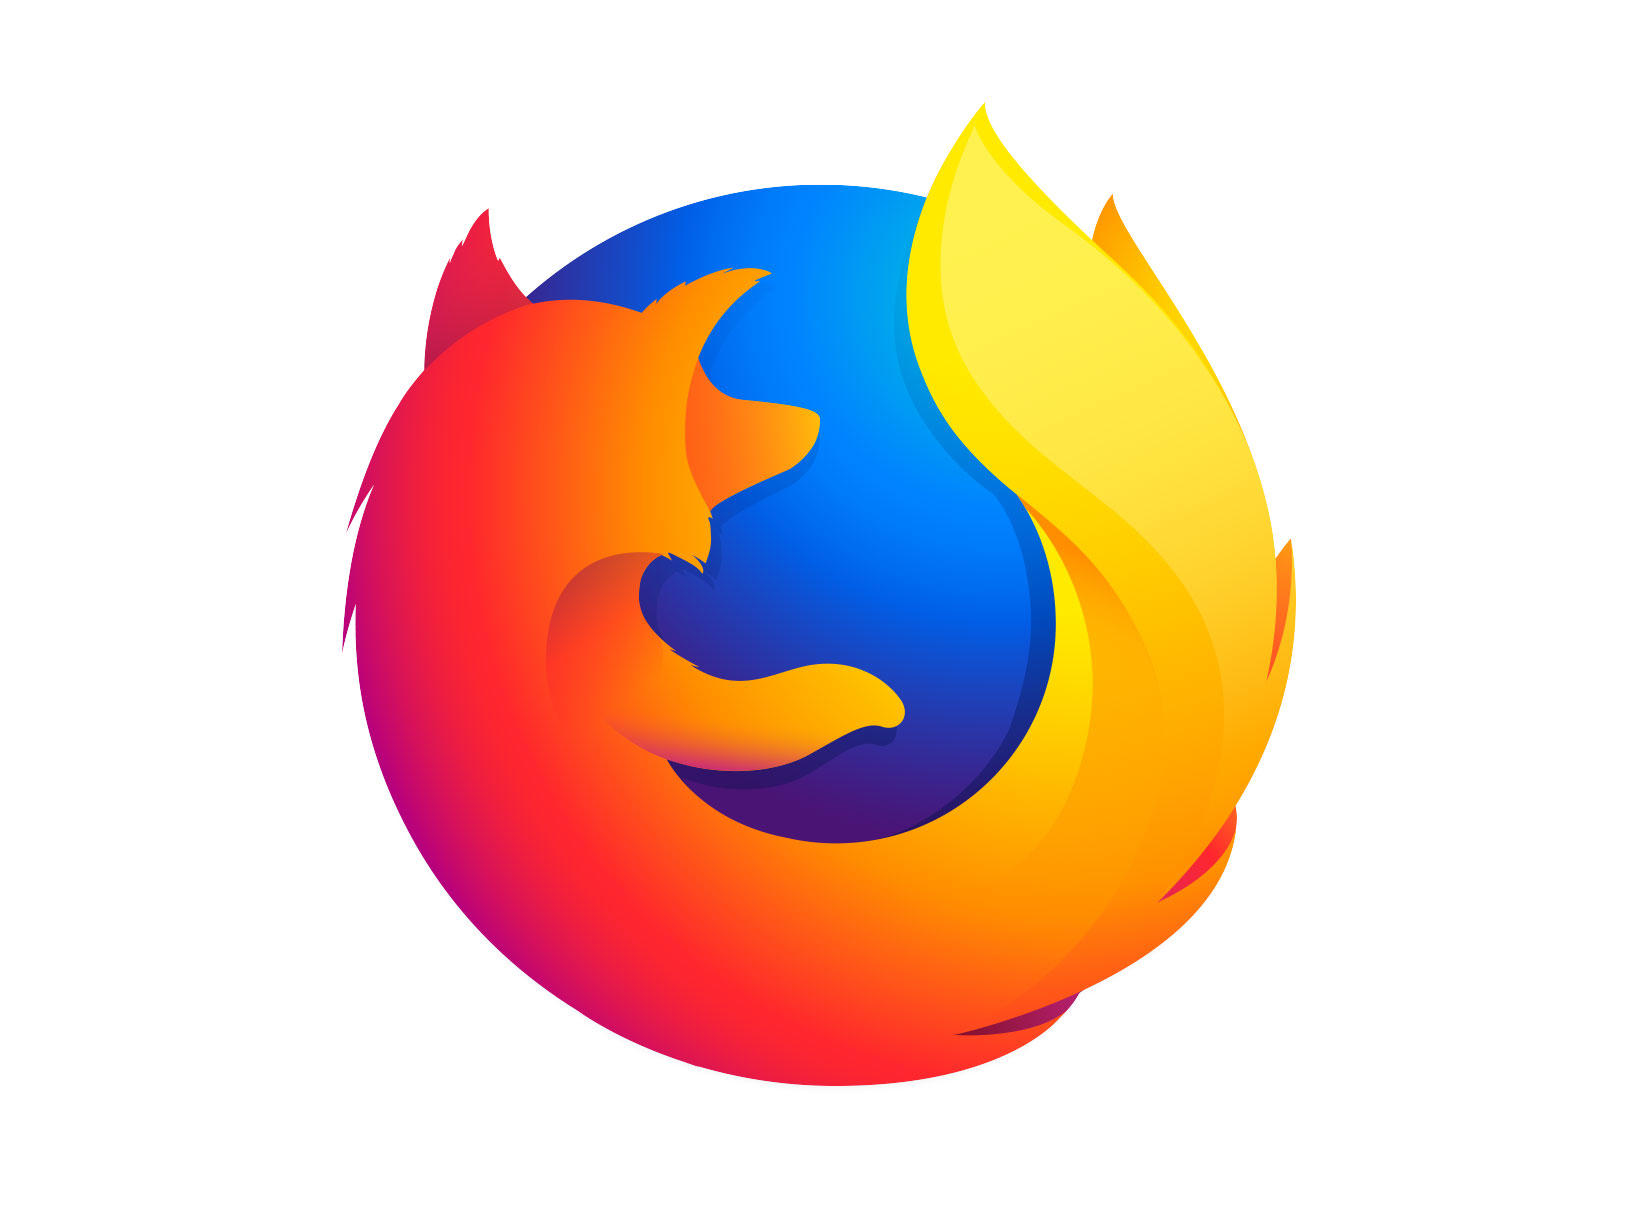 Firefox Quantum sports a simpler logo than earlier versions of Mozilla's browser.